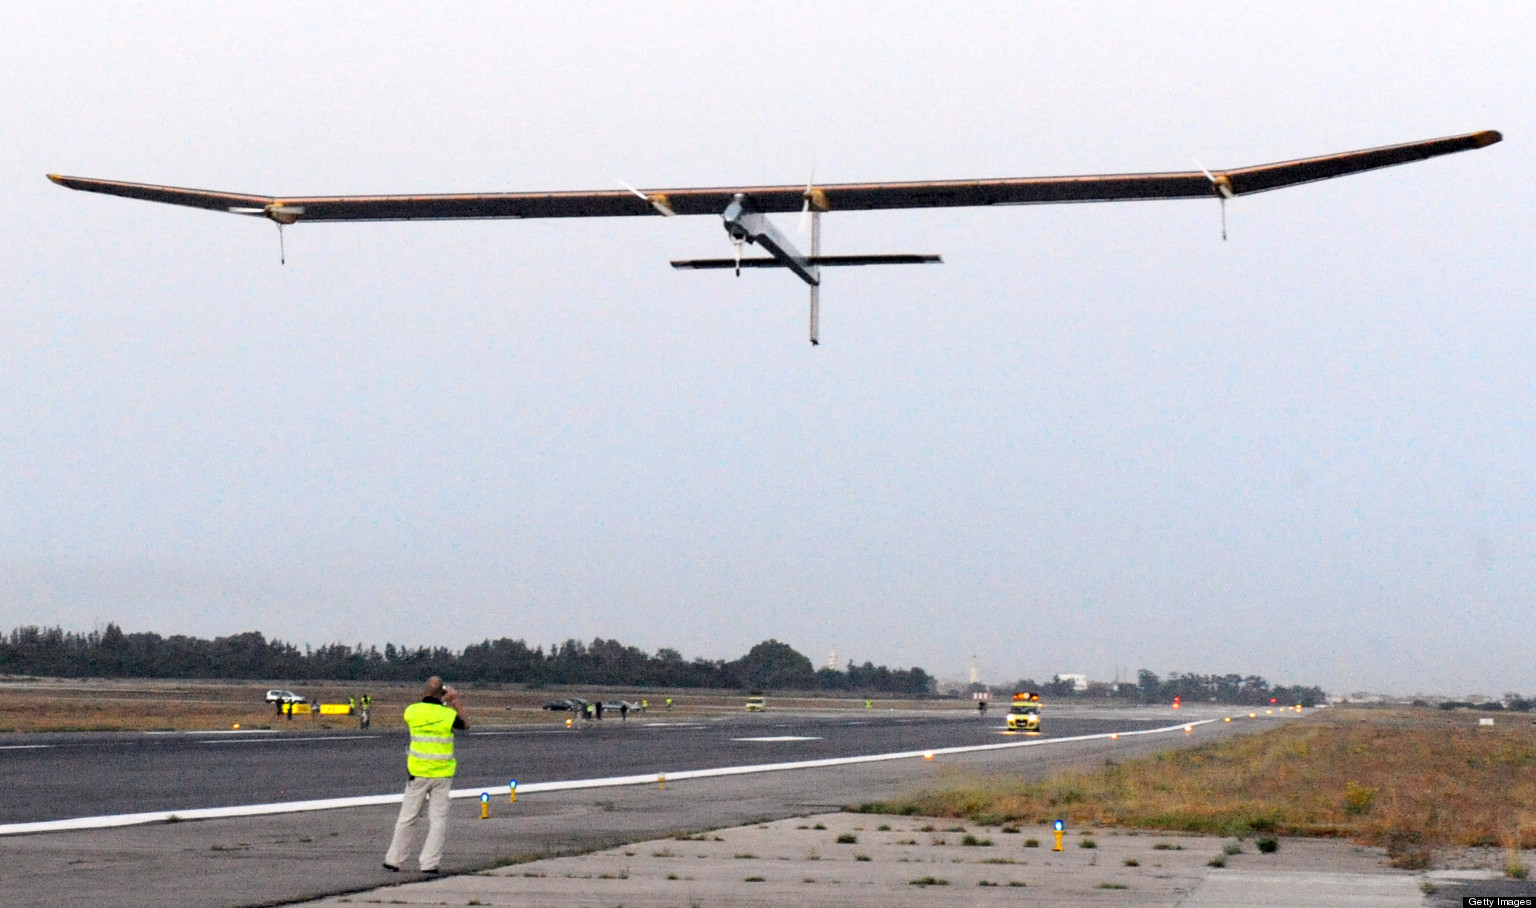 The Swiss-made solar-powered plane, Sola